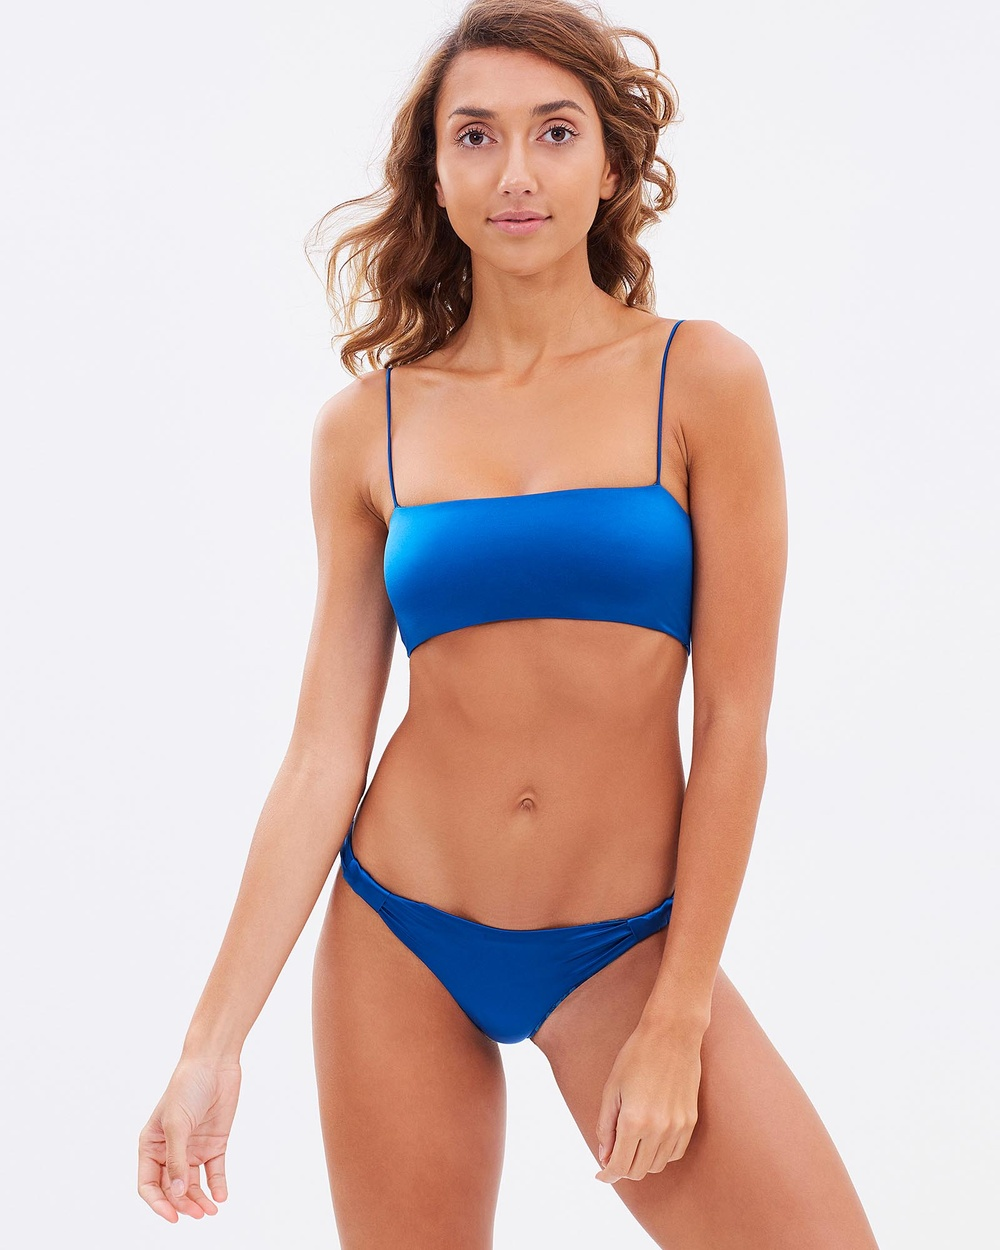 Bond-Eye Swimwear Alchemy Slide By Briefs Bikini Bottoms Blue Alchemy Slide By Briefs